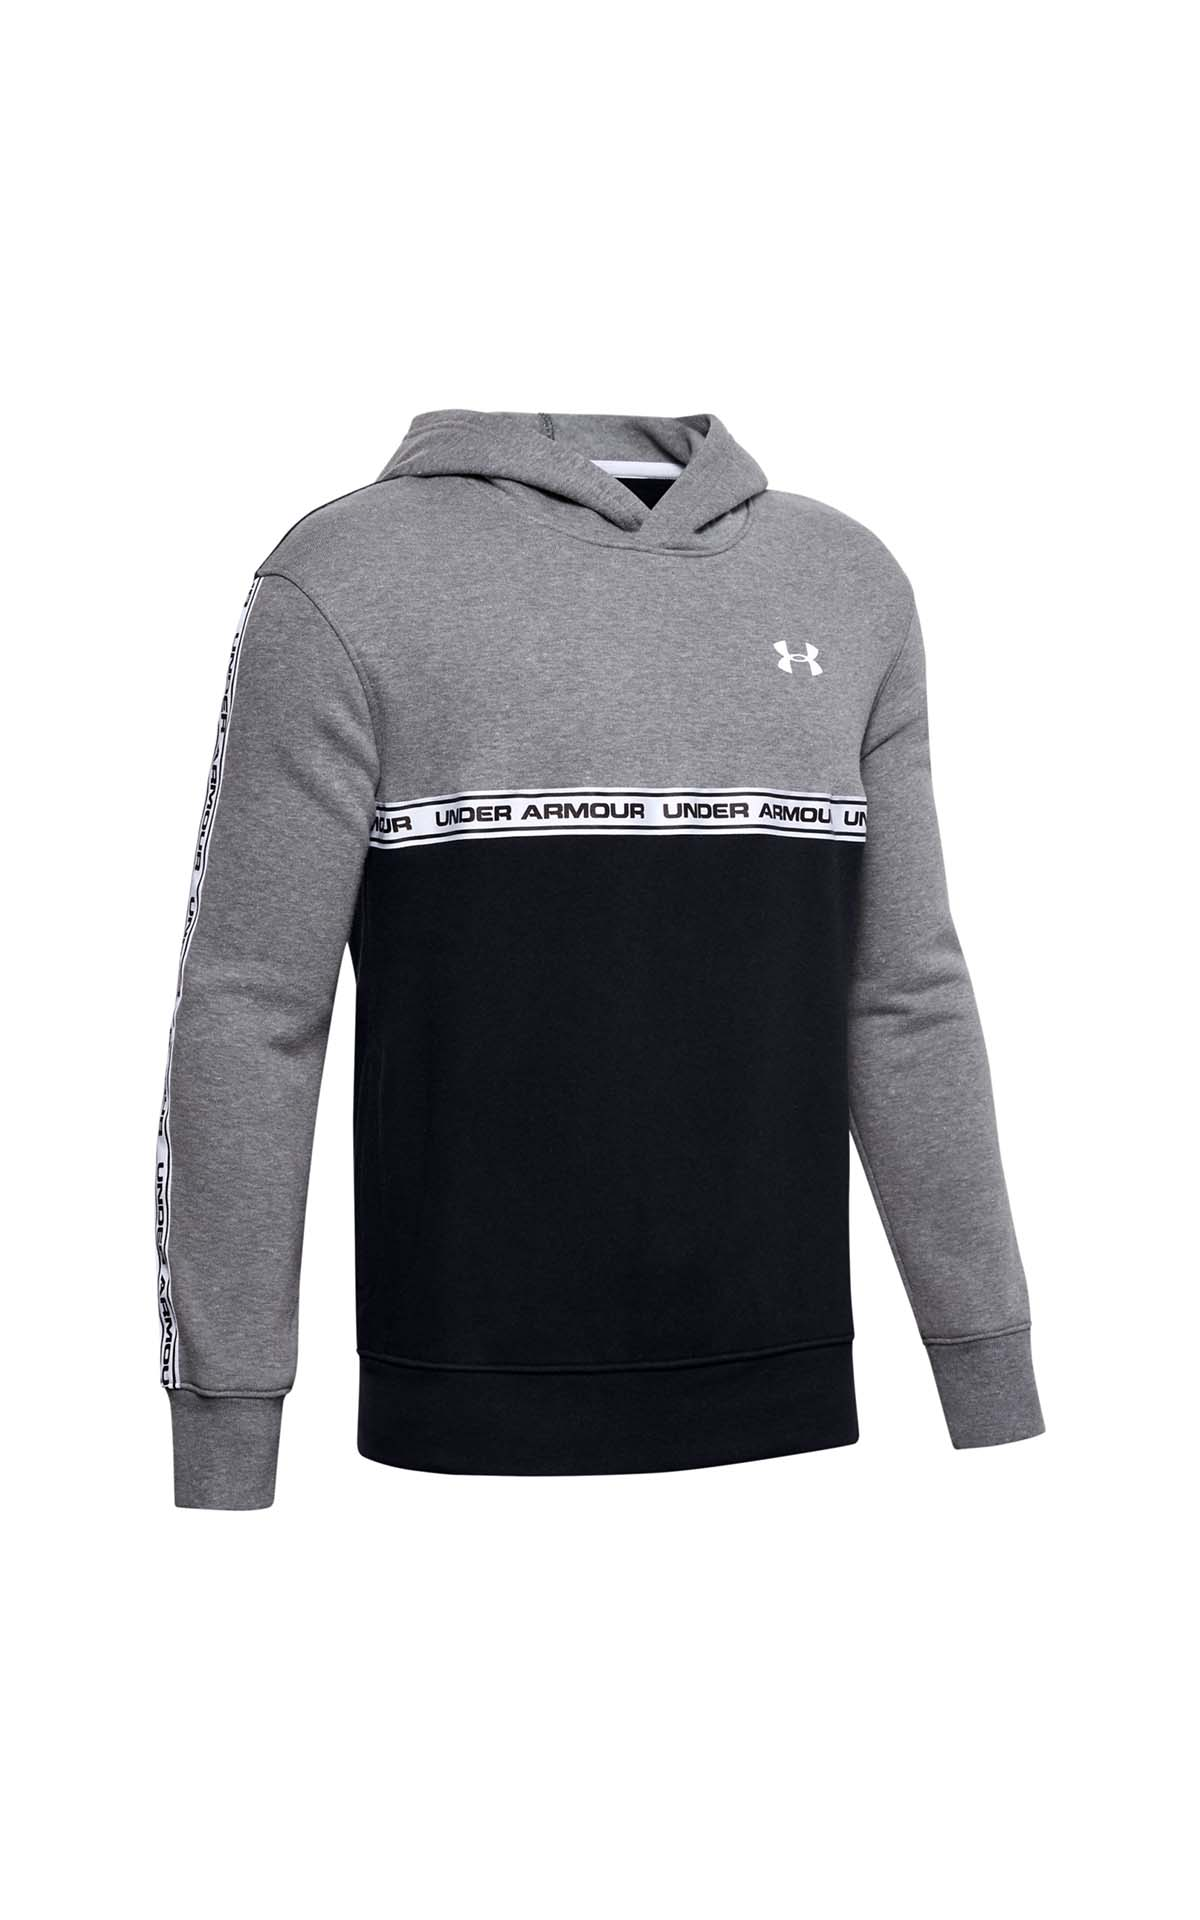 Under Armour Boy's sportstyle fleece hoodie at The Bicester Village Shopping Collection